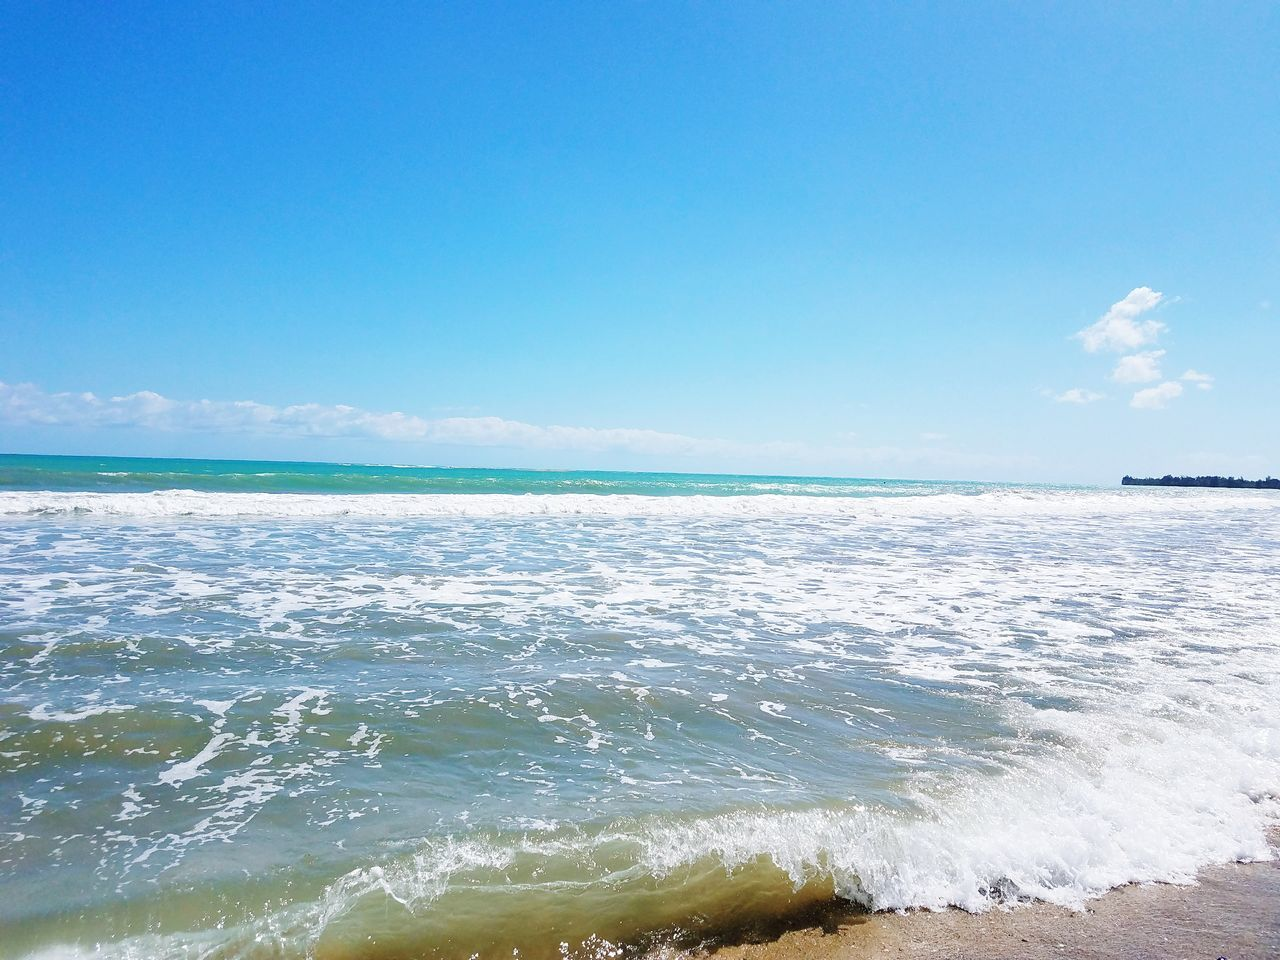 sea, beauty in nature, nature, scenics, water, wave, horizon over water, tranquil scene, surf, beach, tranquility, blue, outdoors, no people, sky, day, motion, sunlight, travel destinations, summer, sand, vacations